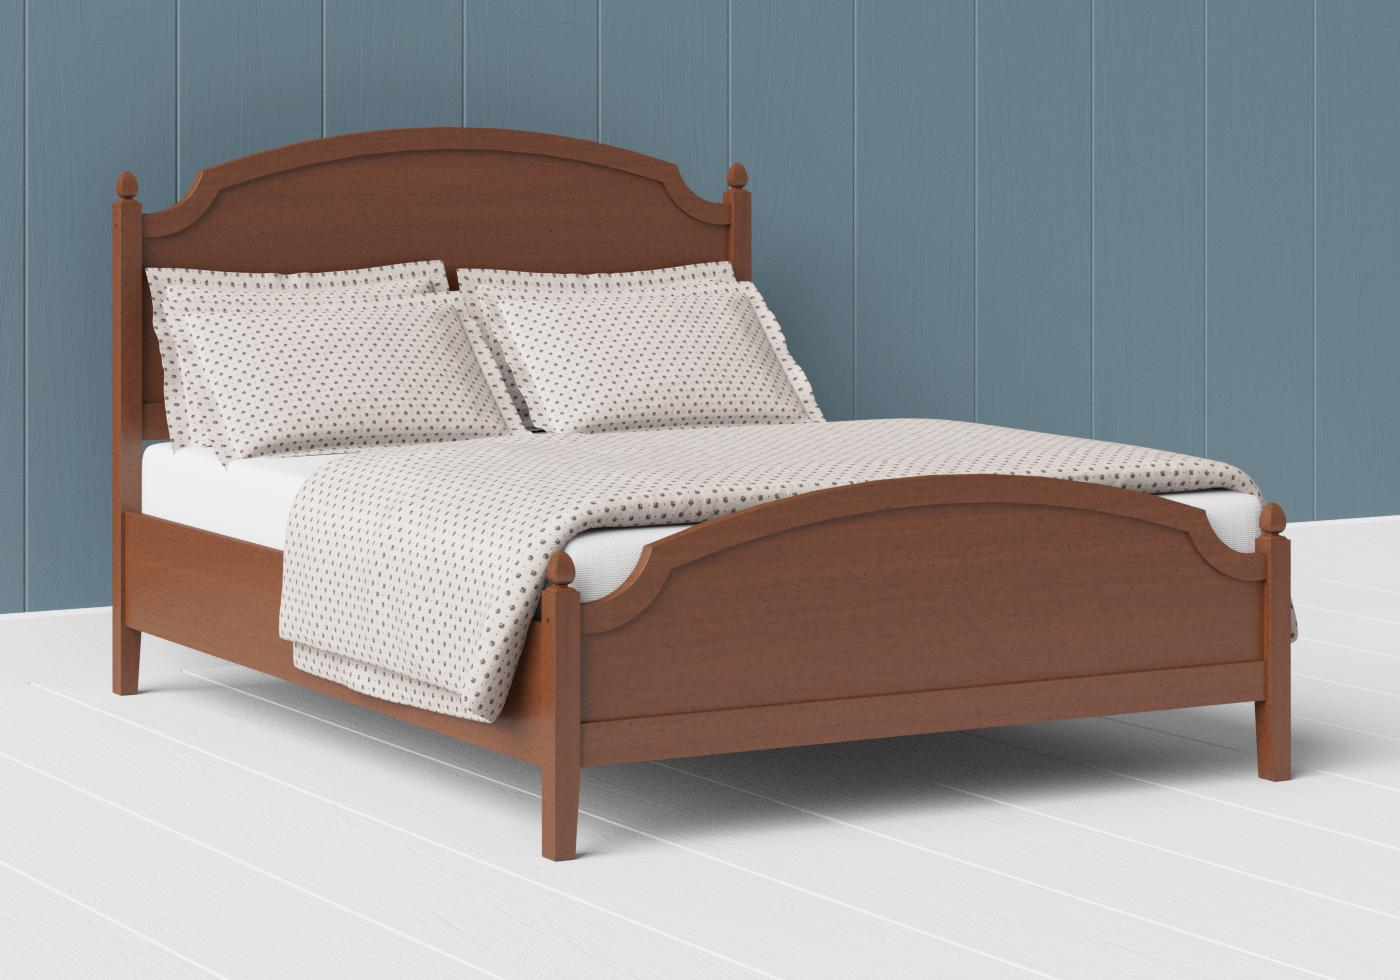 Kipling low footend wood bed in a dark cherry finish